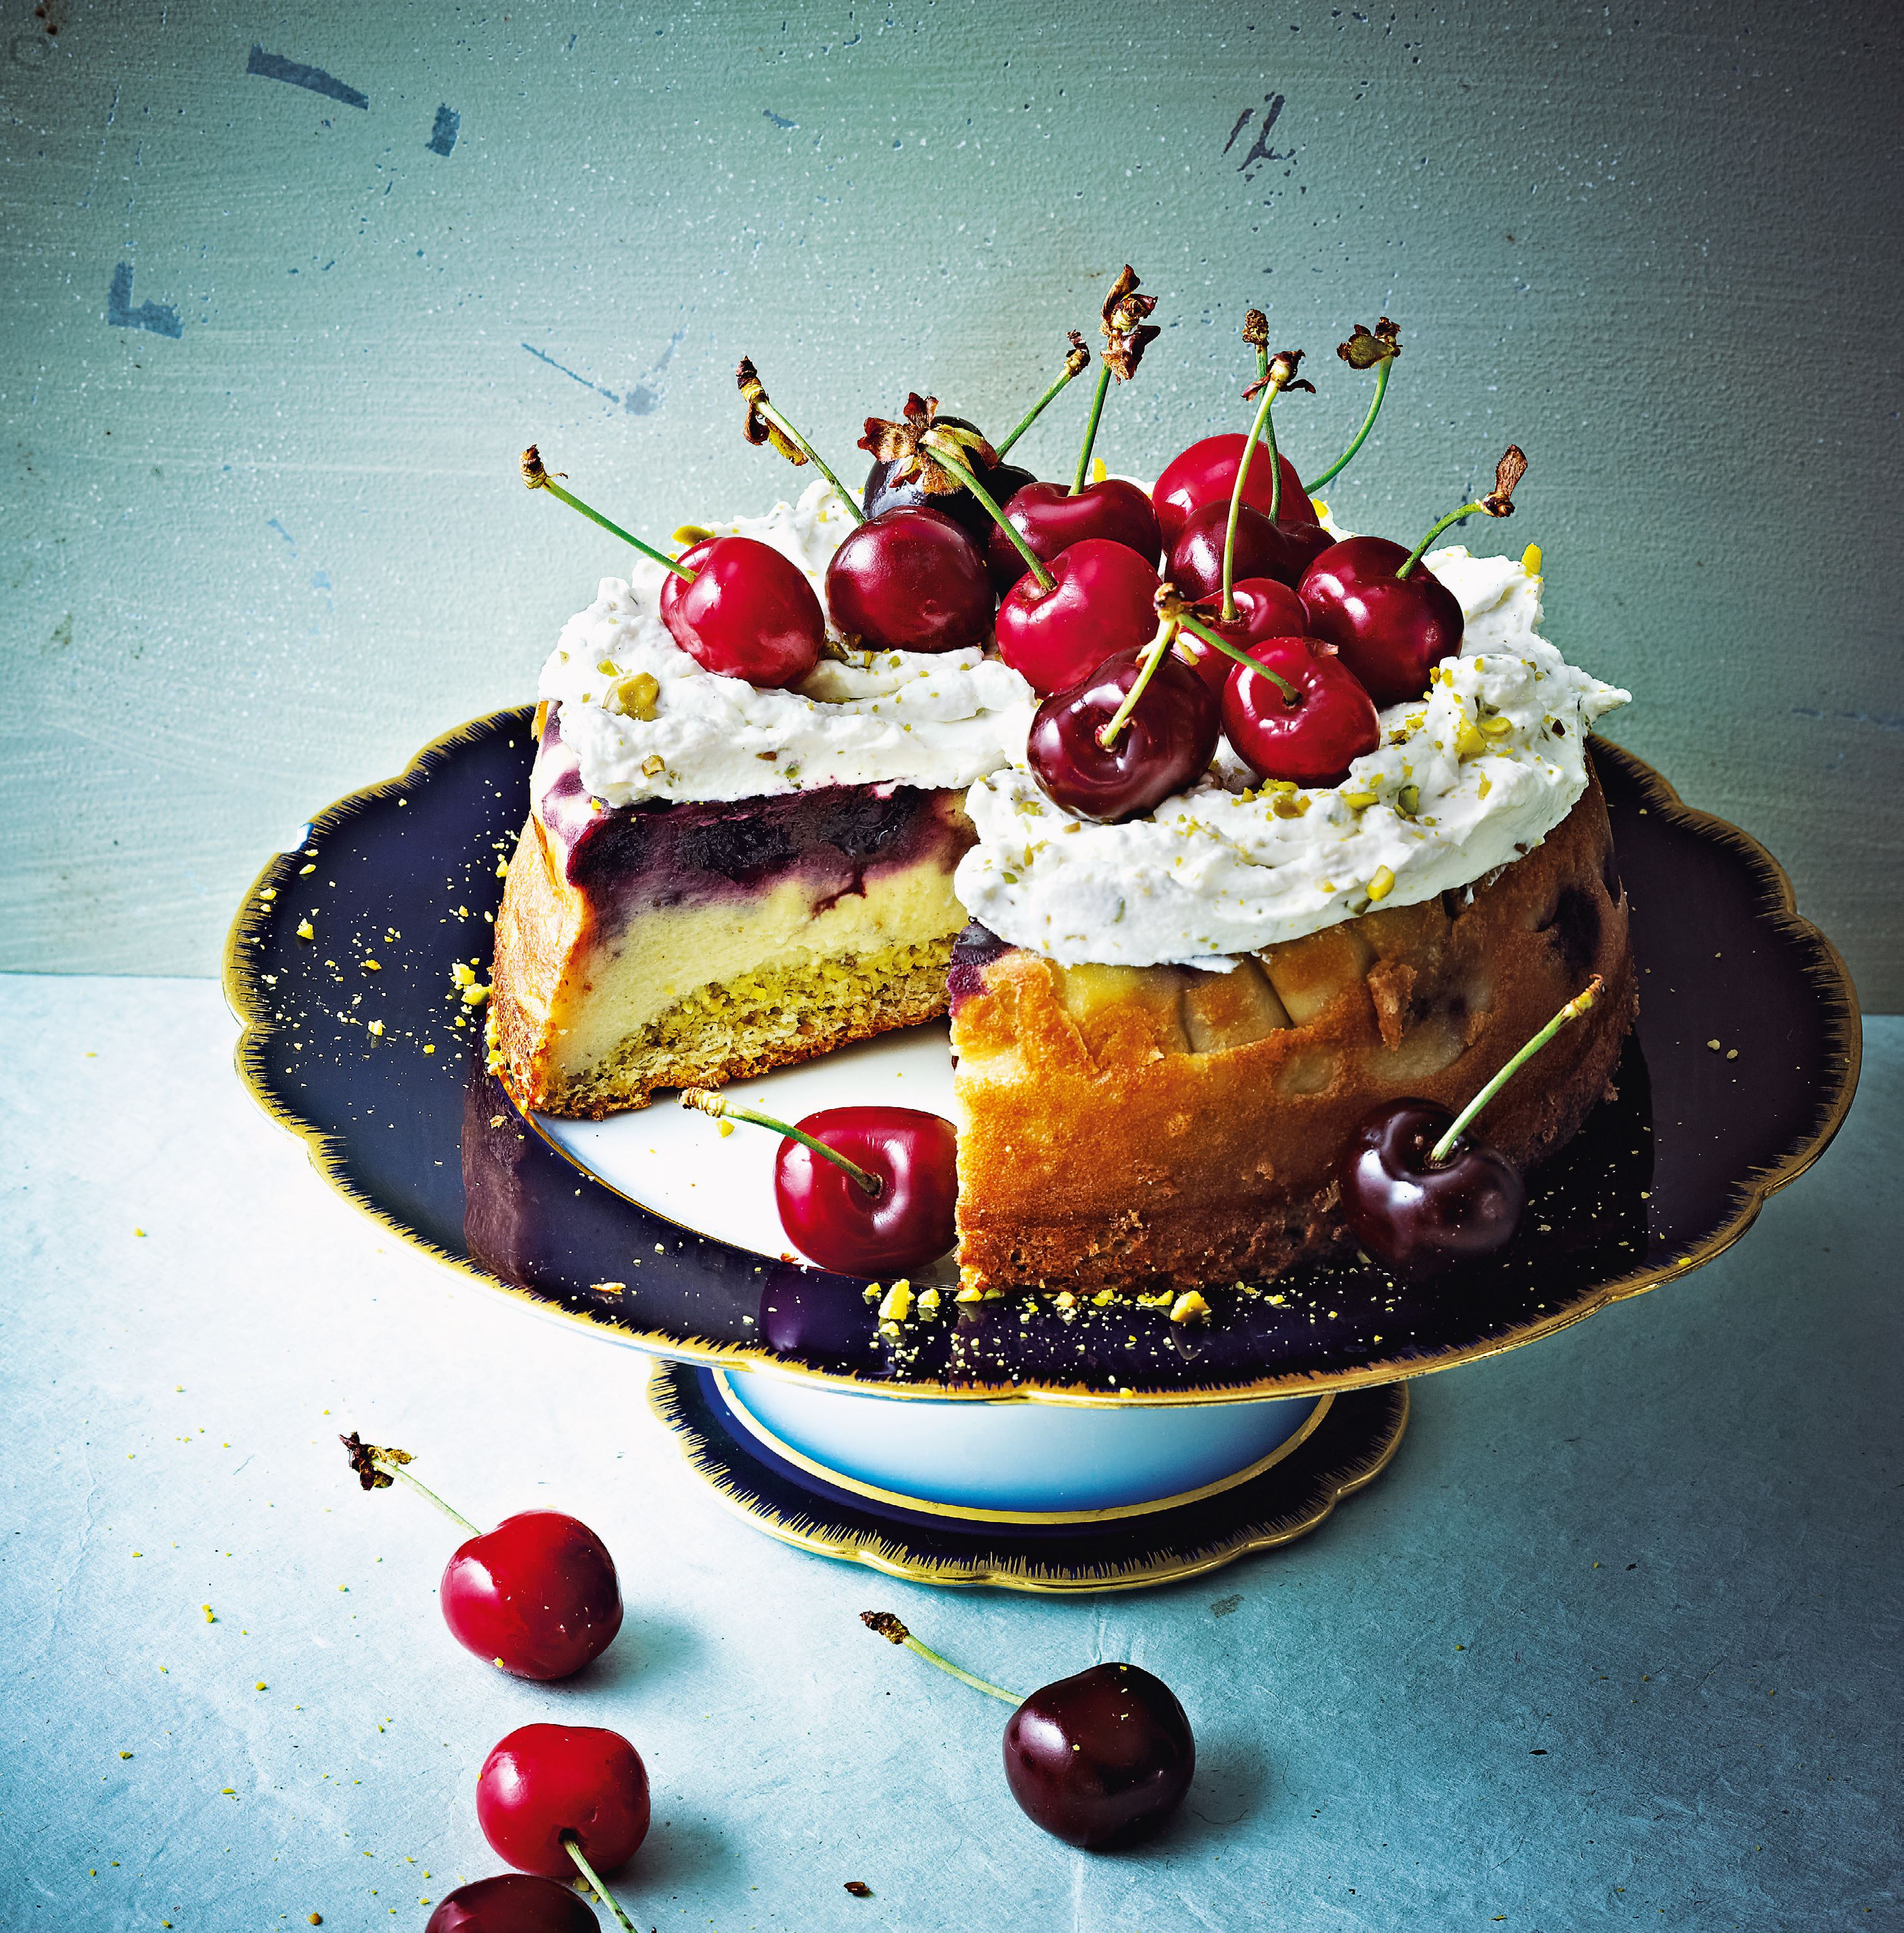 Pistachio and morello cherry cake